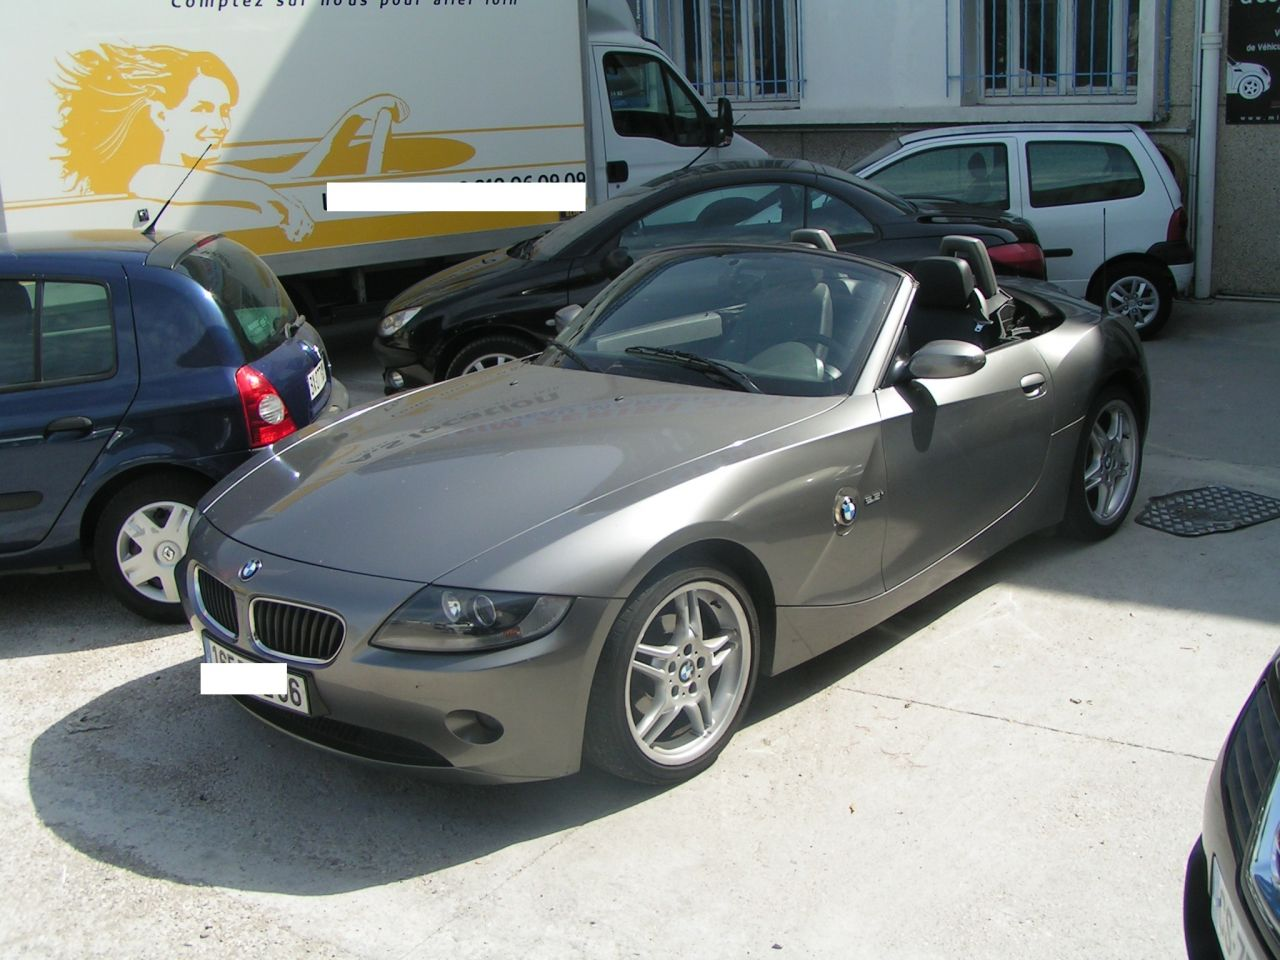 vendu cette semaine roadster bmw z4 71 500 kms garantie pro reprise auto et vente avec. Black Bedroom Furniture Sets. Home Design Ideas